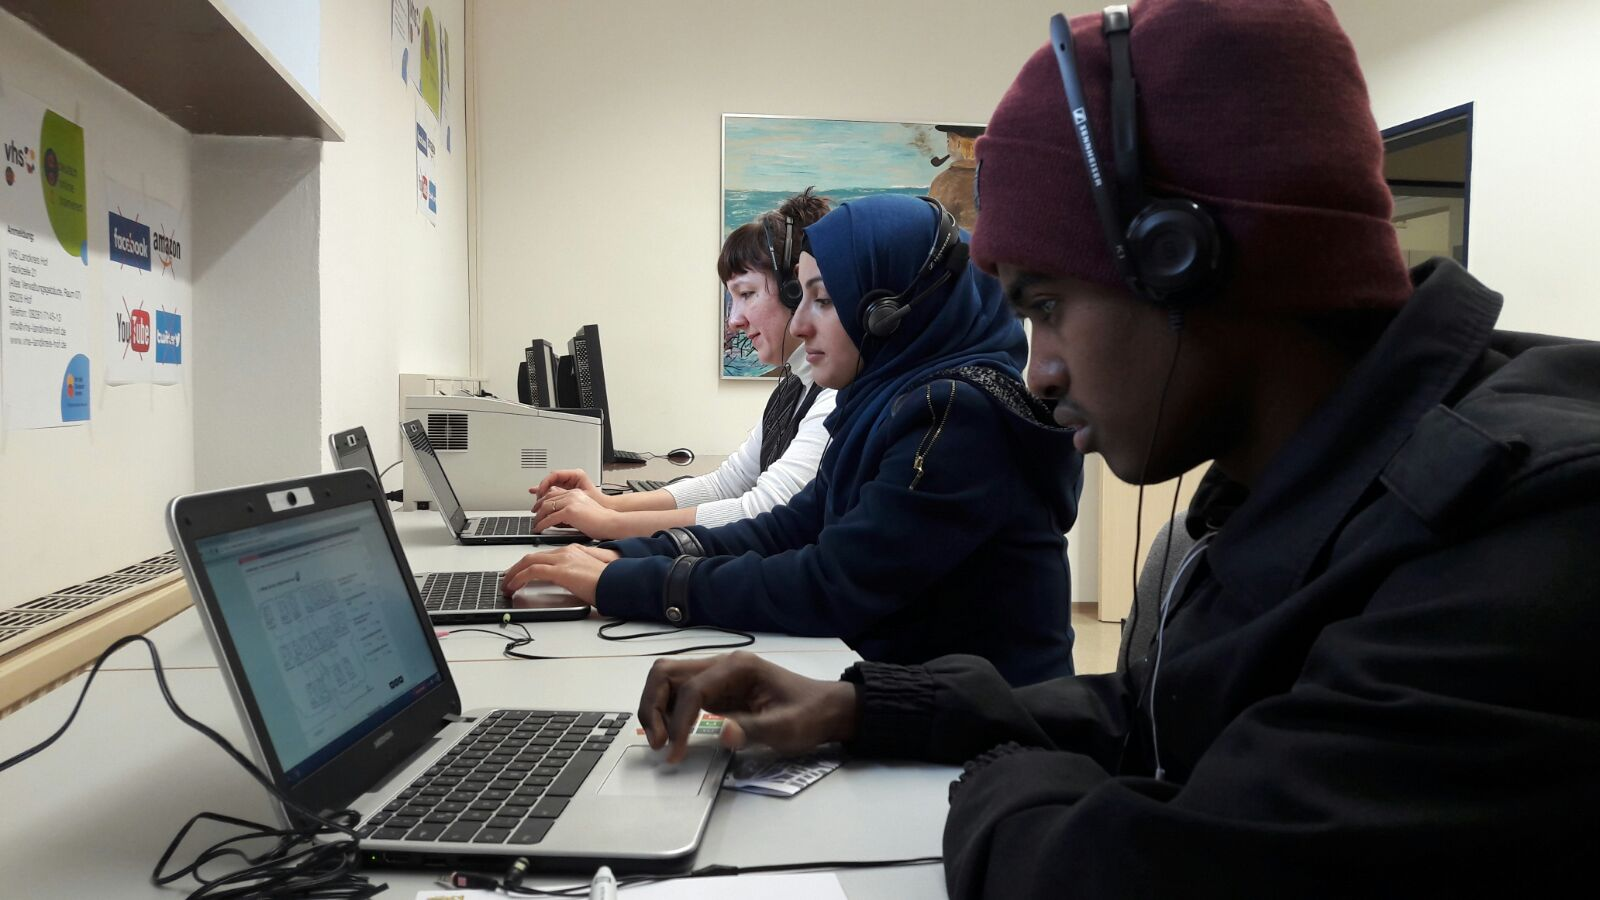 Refugees learning at the Chromebook in the Volkshochschule Hof